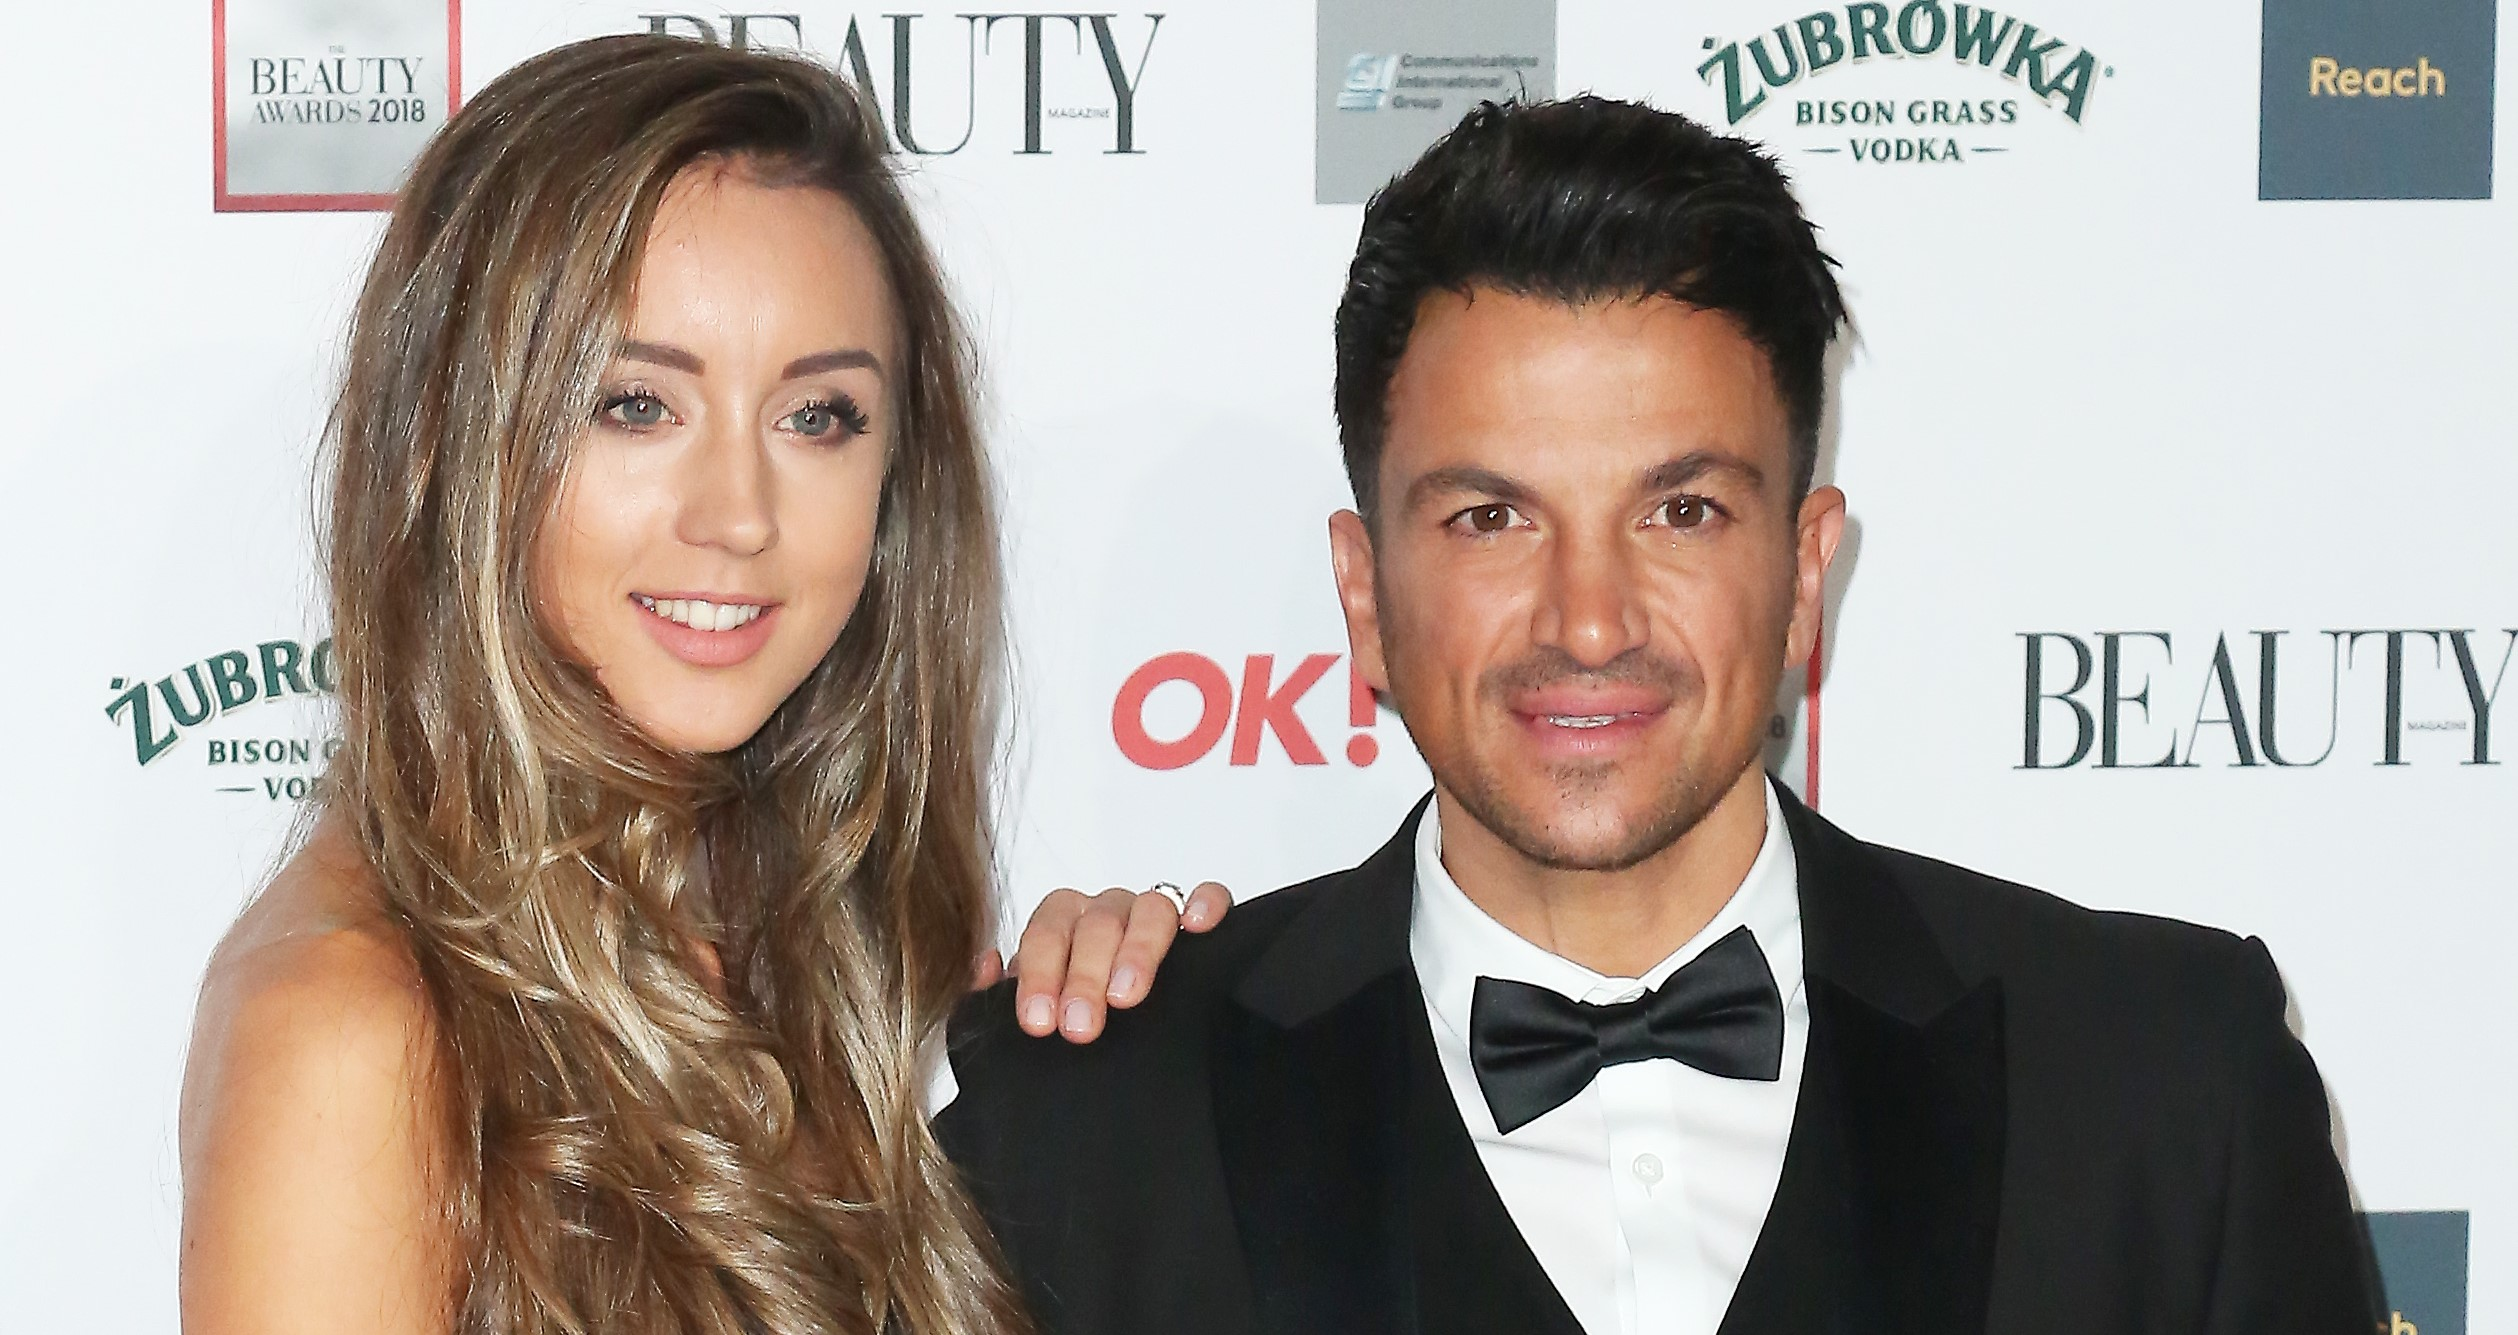 Peter Andre reveals extravagant 30th birthday present for wife Emily